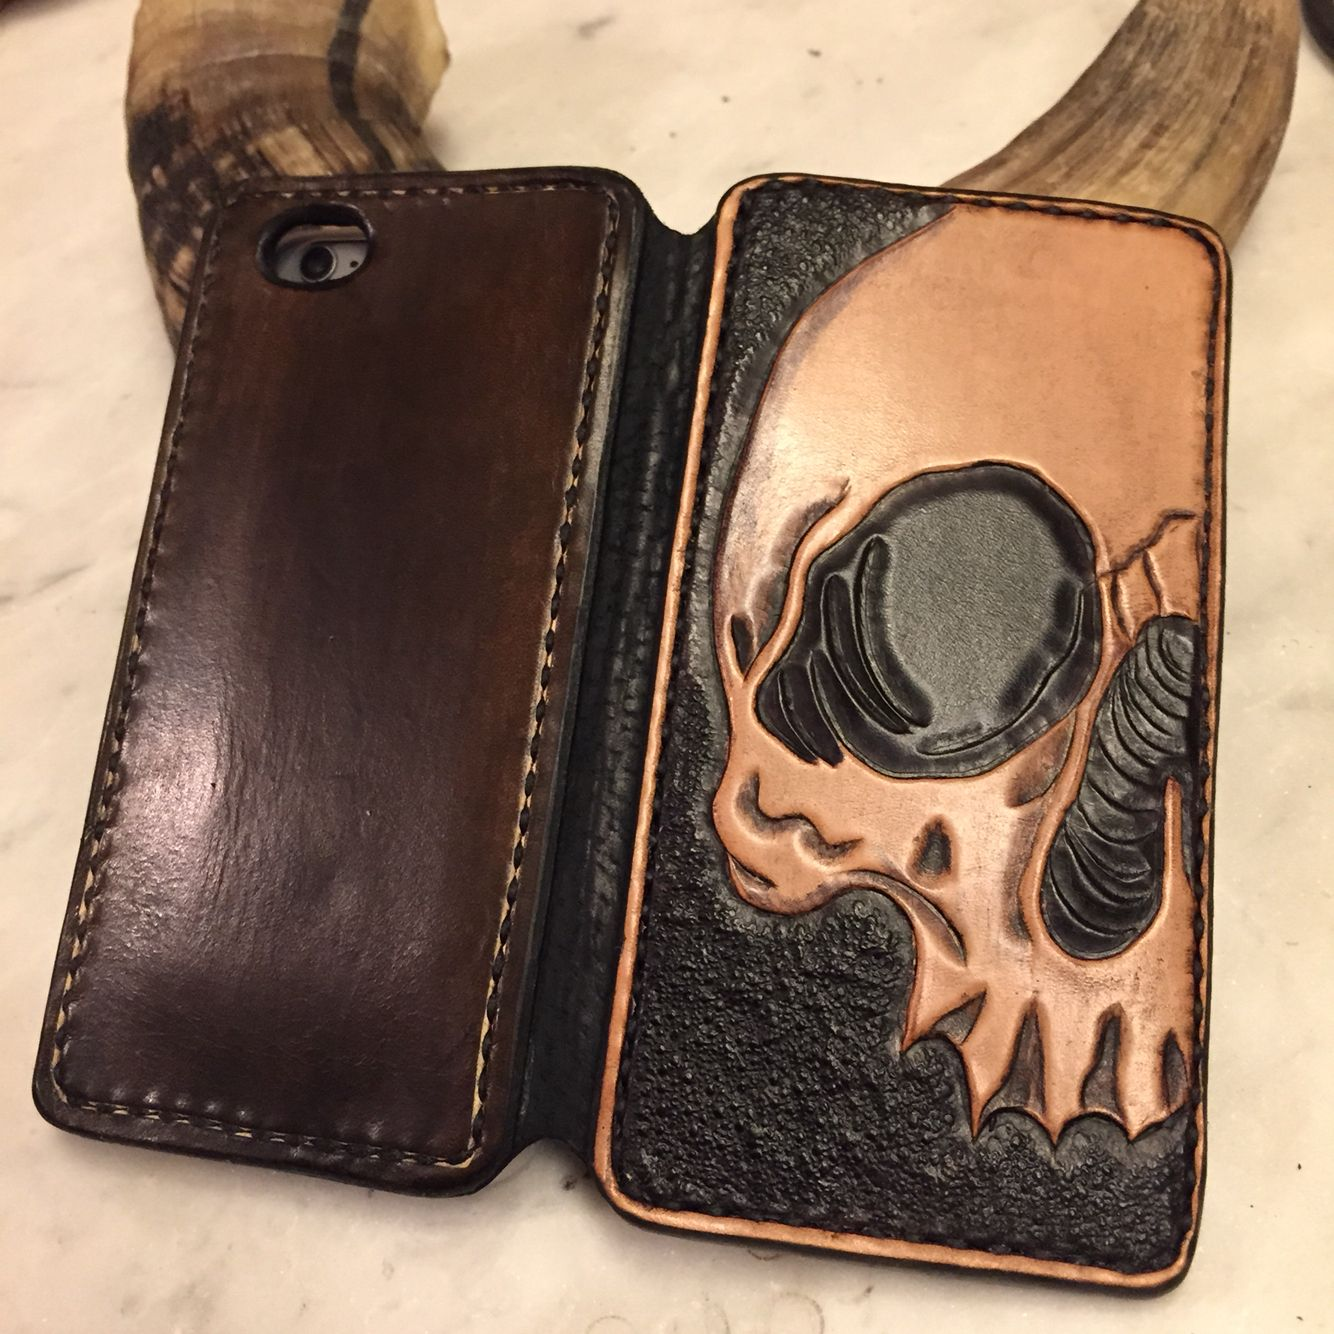 iPhone 6 case made by biteleather.com